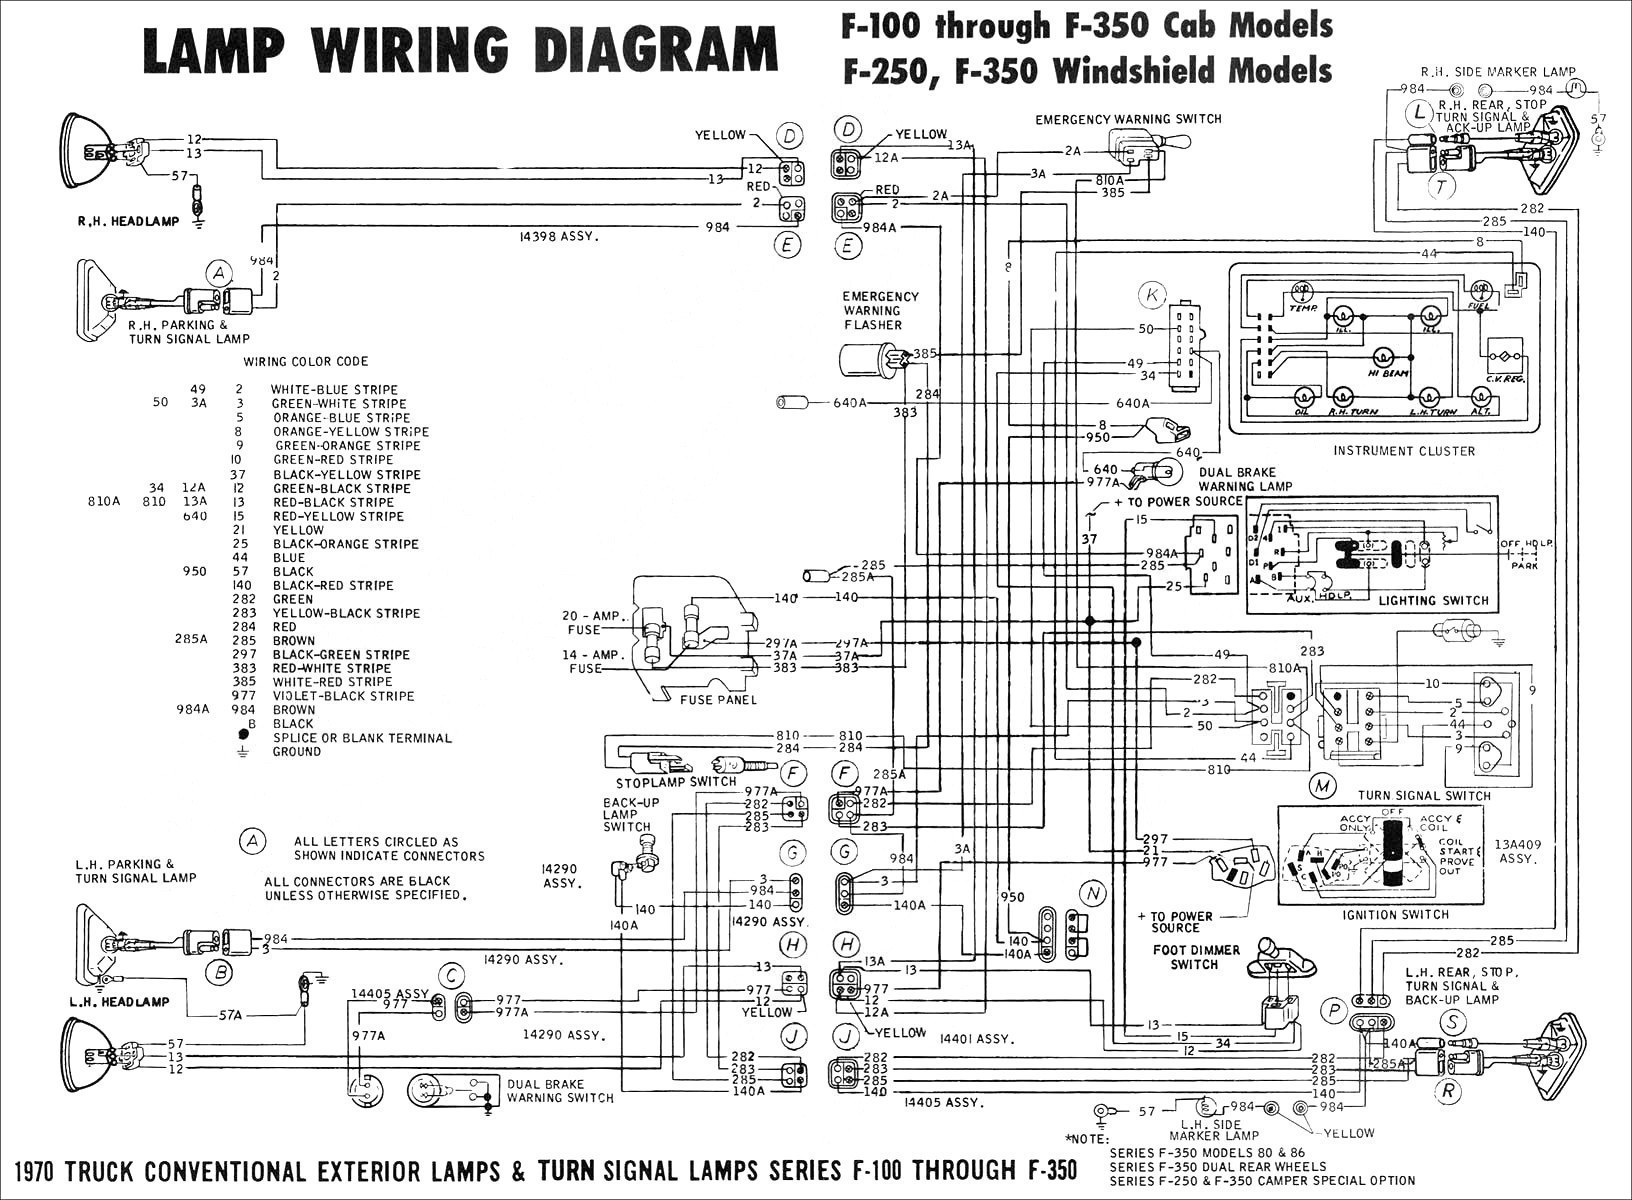 2003 Audi A4 1 8 T Engine Diagram Wiring Diagram Archives Page 72 Of 77 Elgrifo Of 2003 Audi A4 1 8 T Engine Diagram